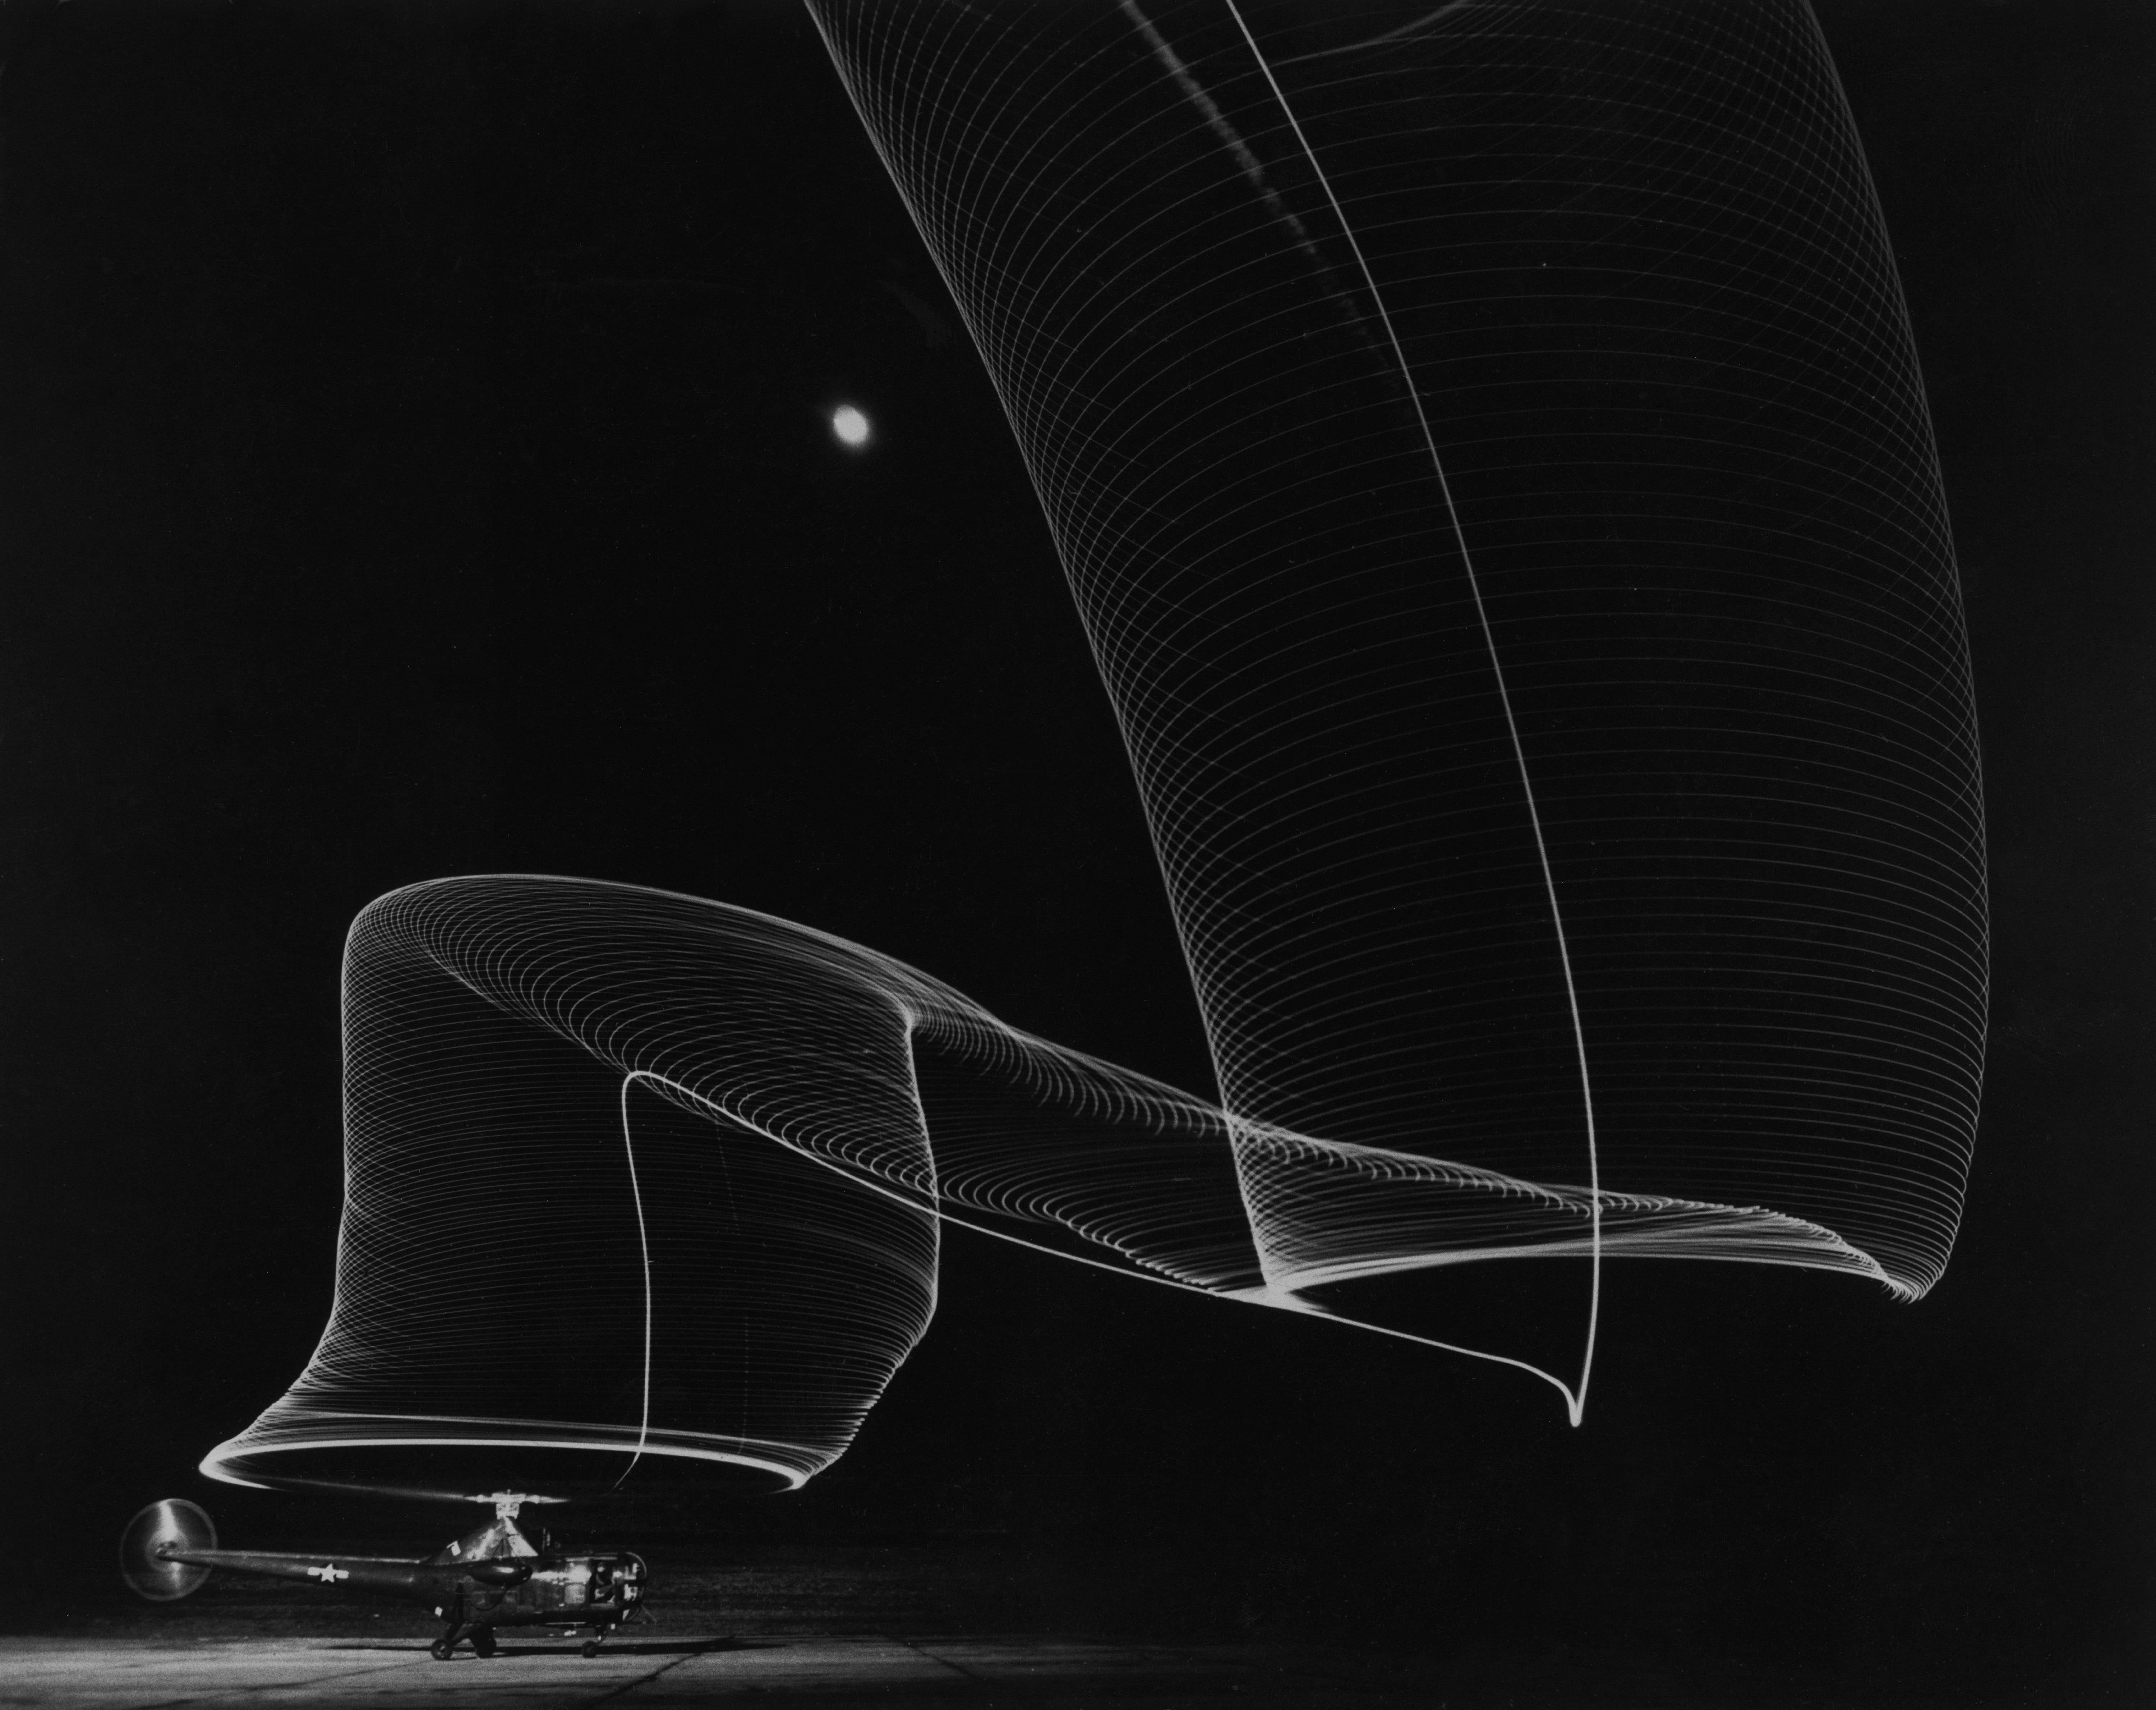 Navy Helicopter or Pattern Made by Helicopter Wing Lights, Anacostia, MD, 1949